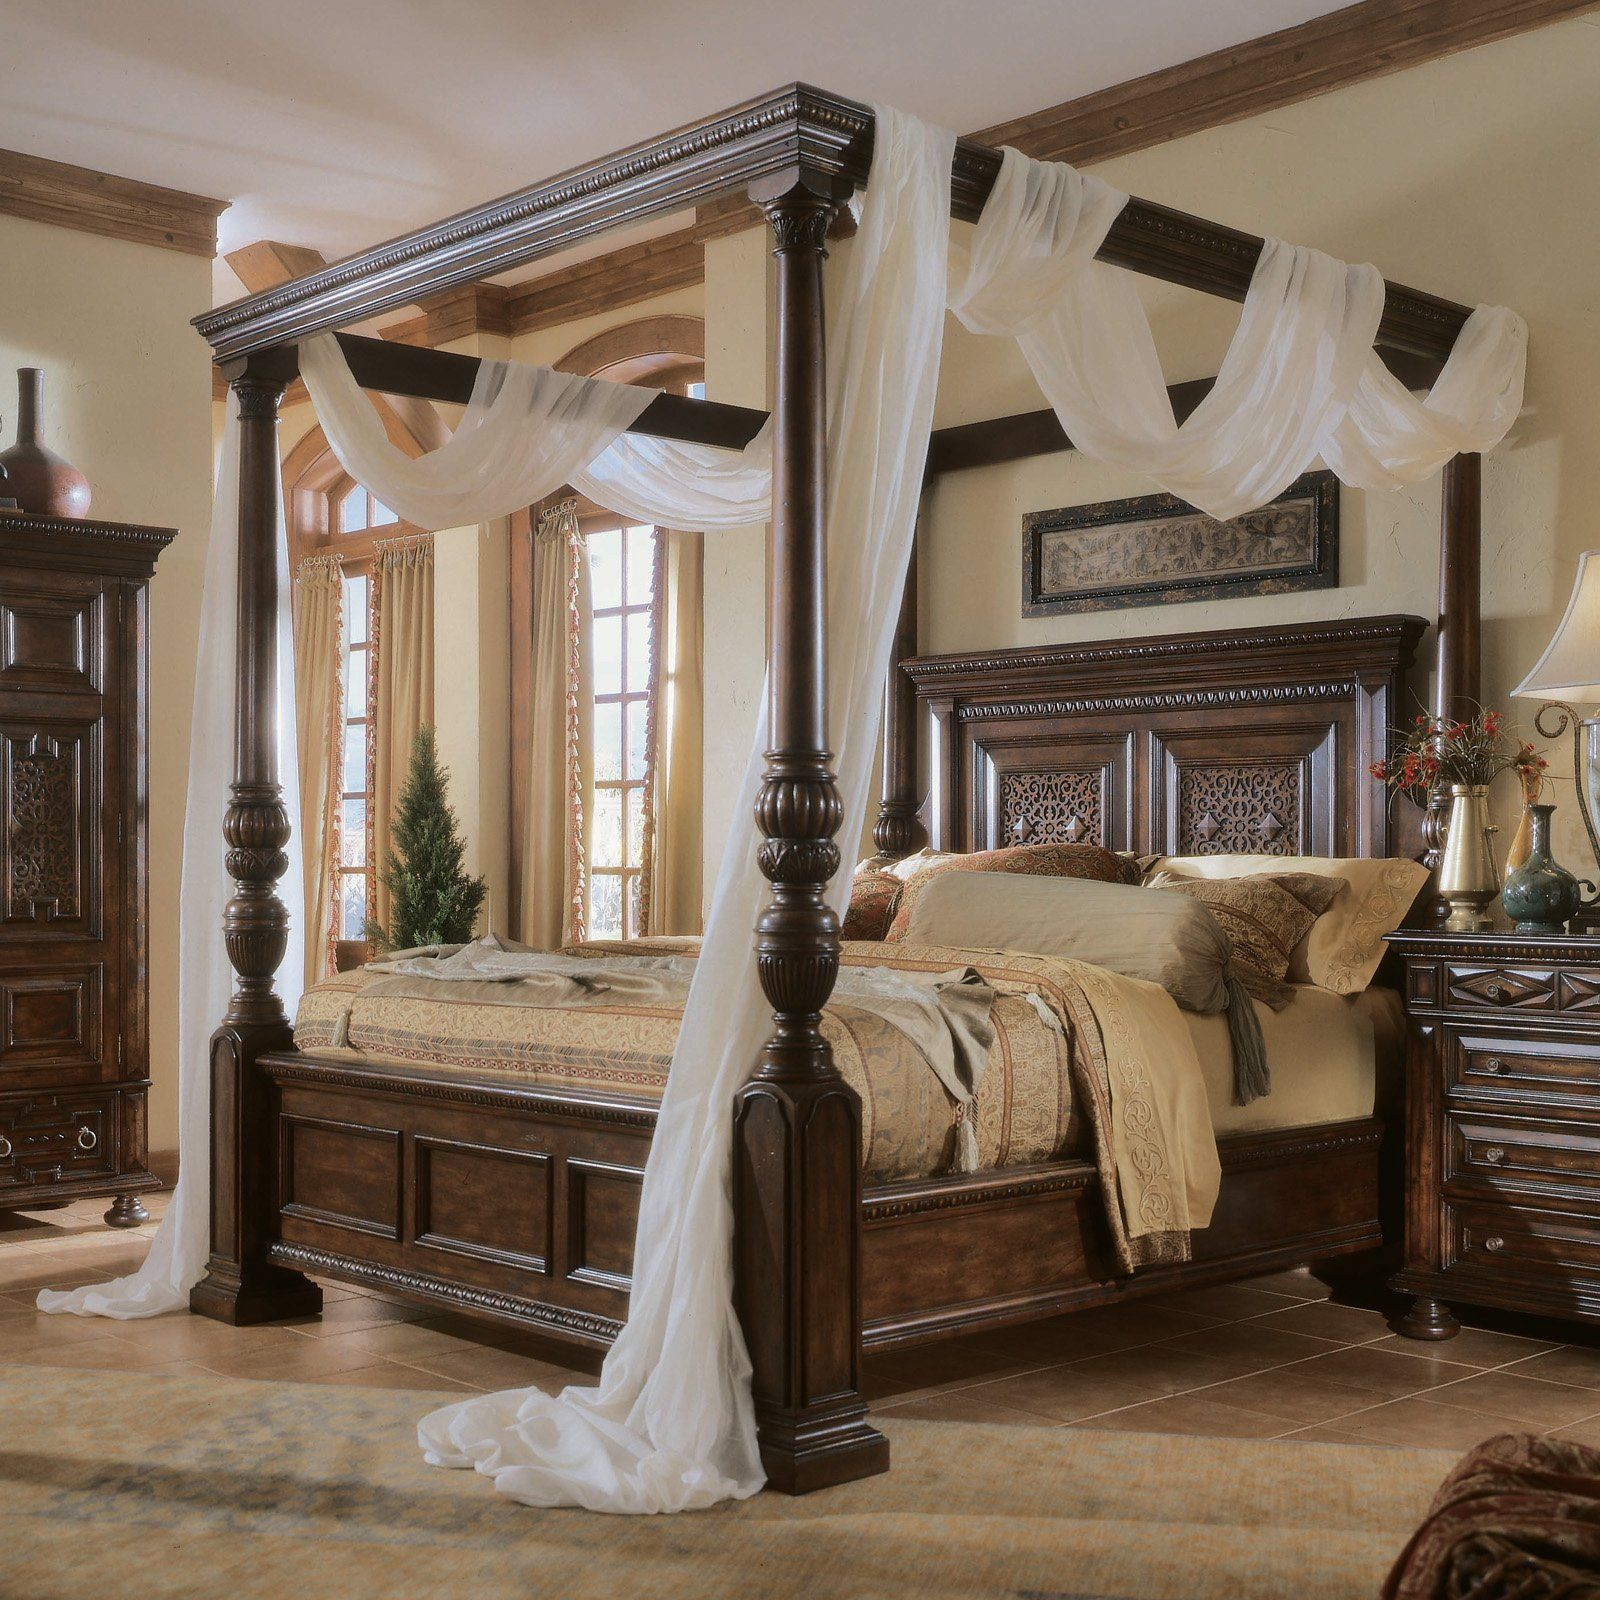 Canopy bedroom sets with curtains - 15 Most Beautiful Decorated And Designed Beds